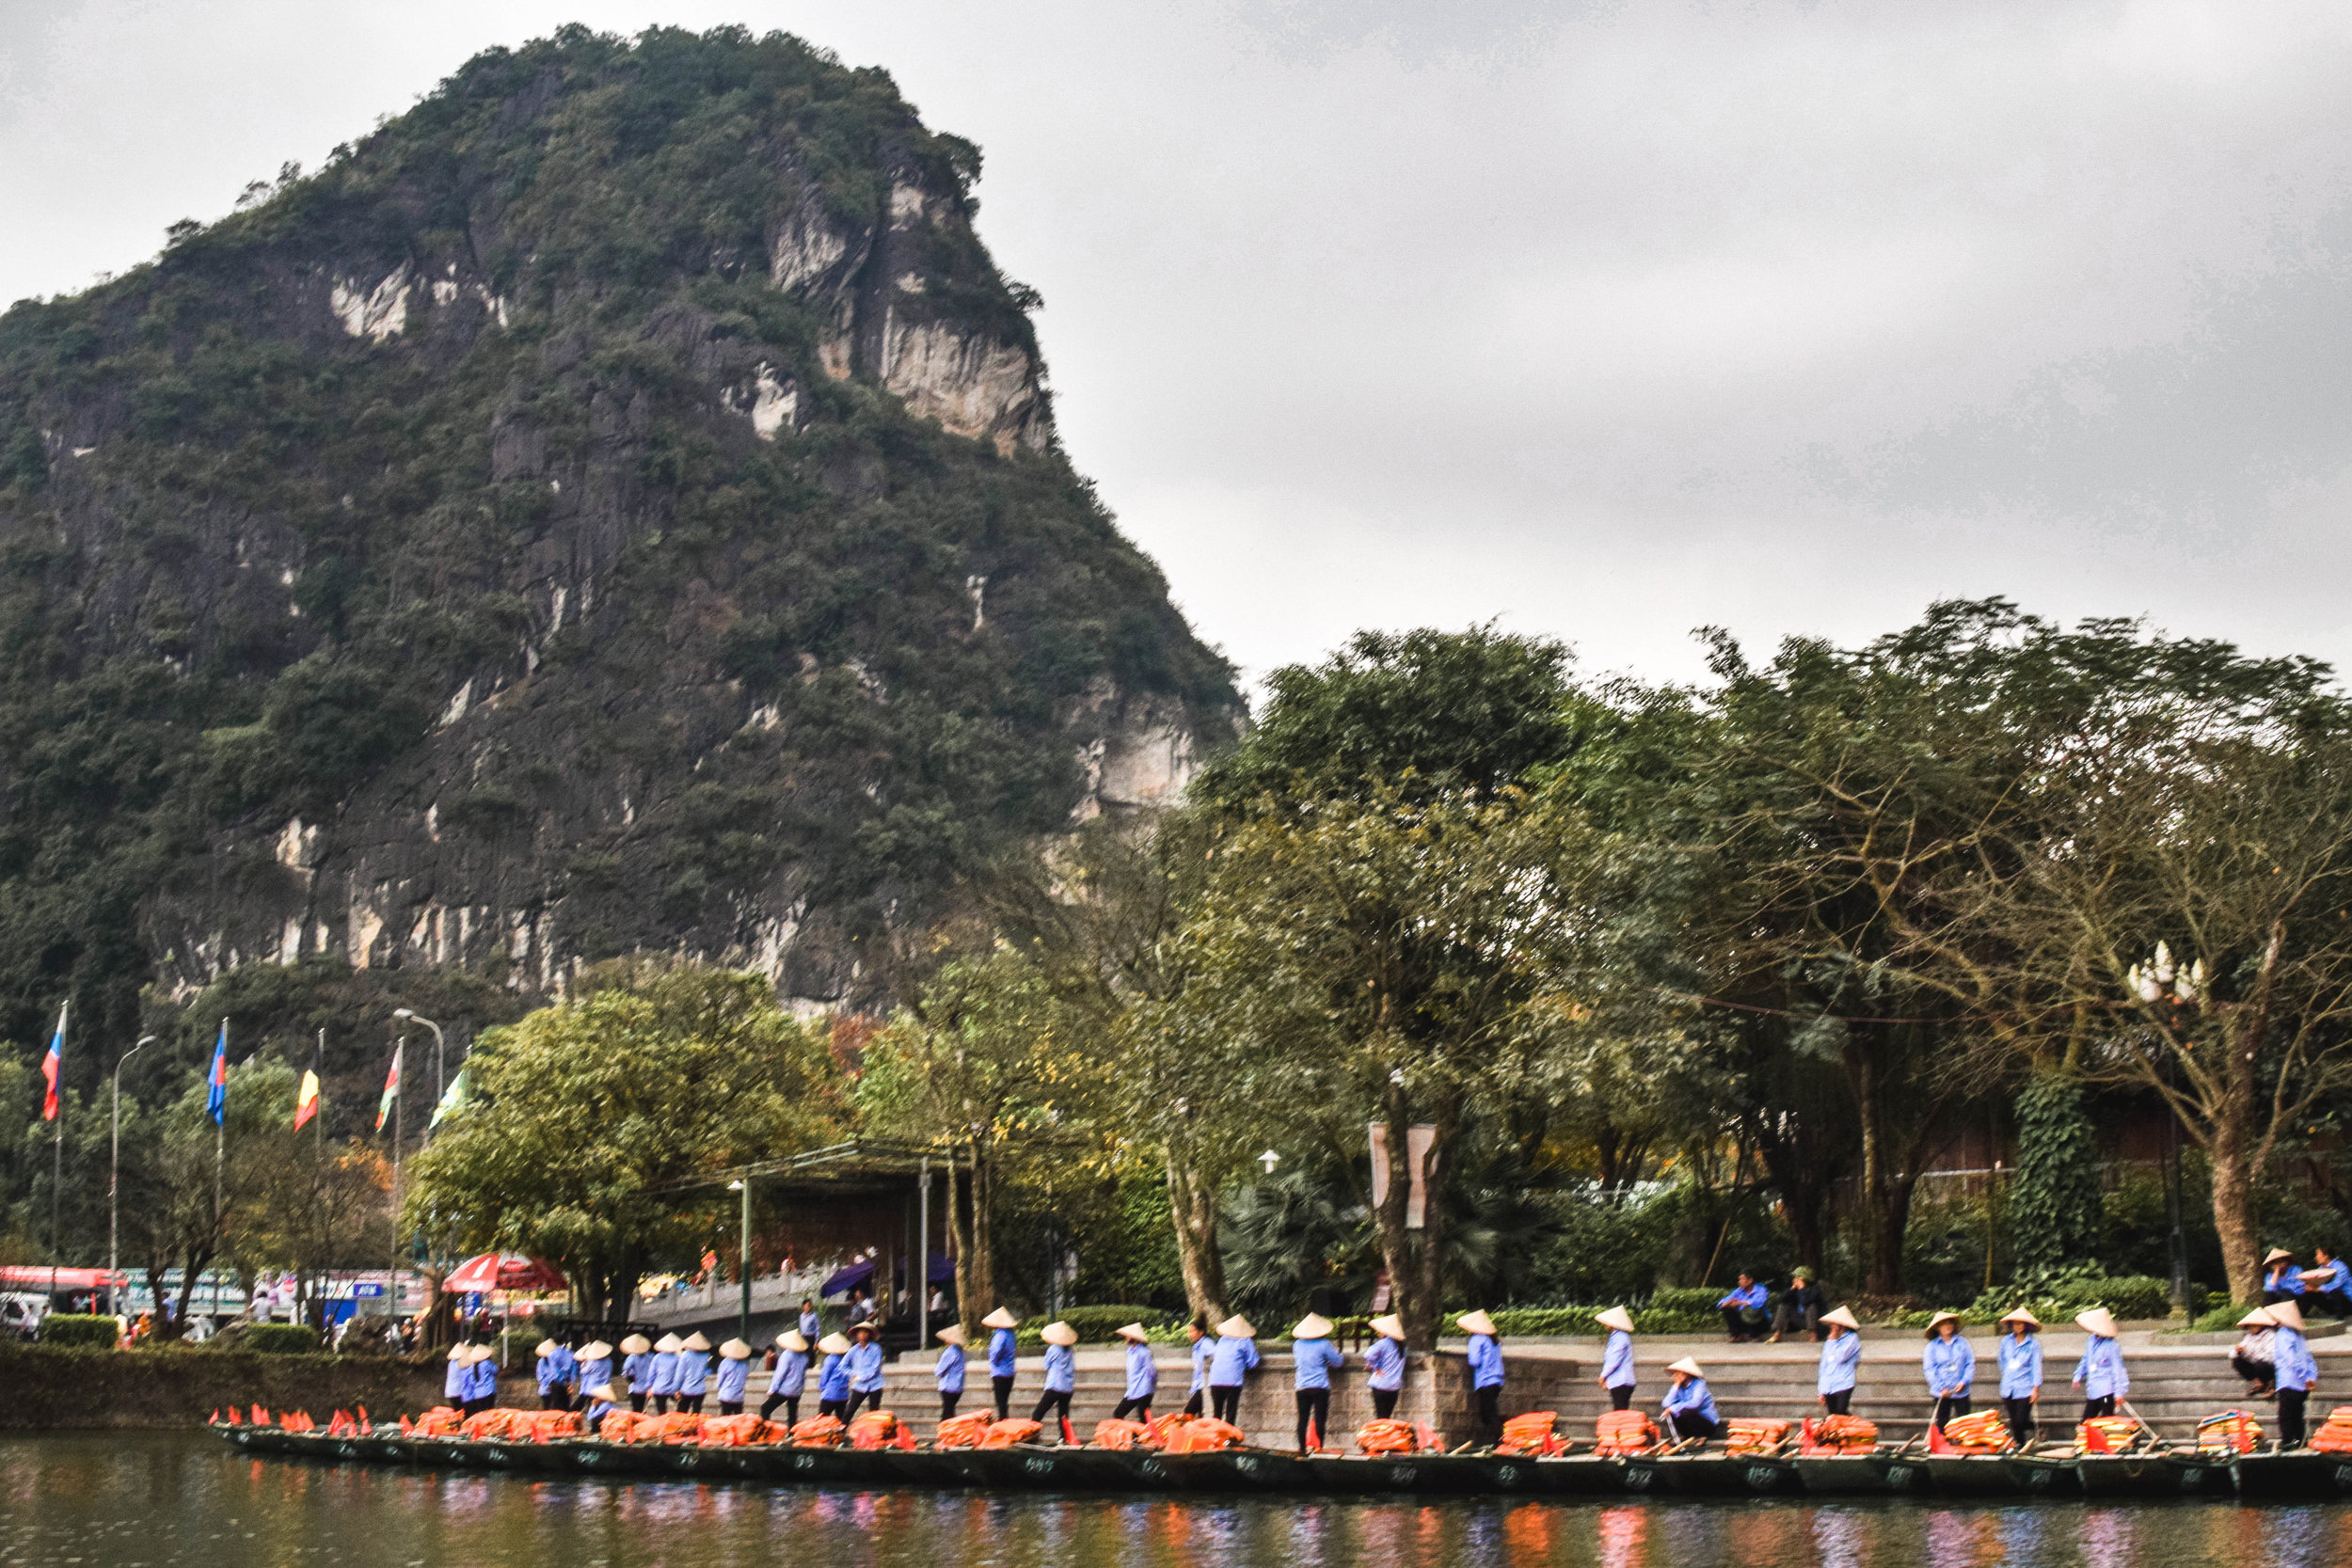 All the boat ladies waiting for tour groups at Trang An Grottoes.